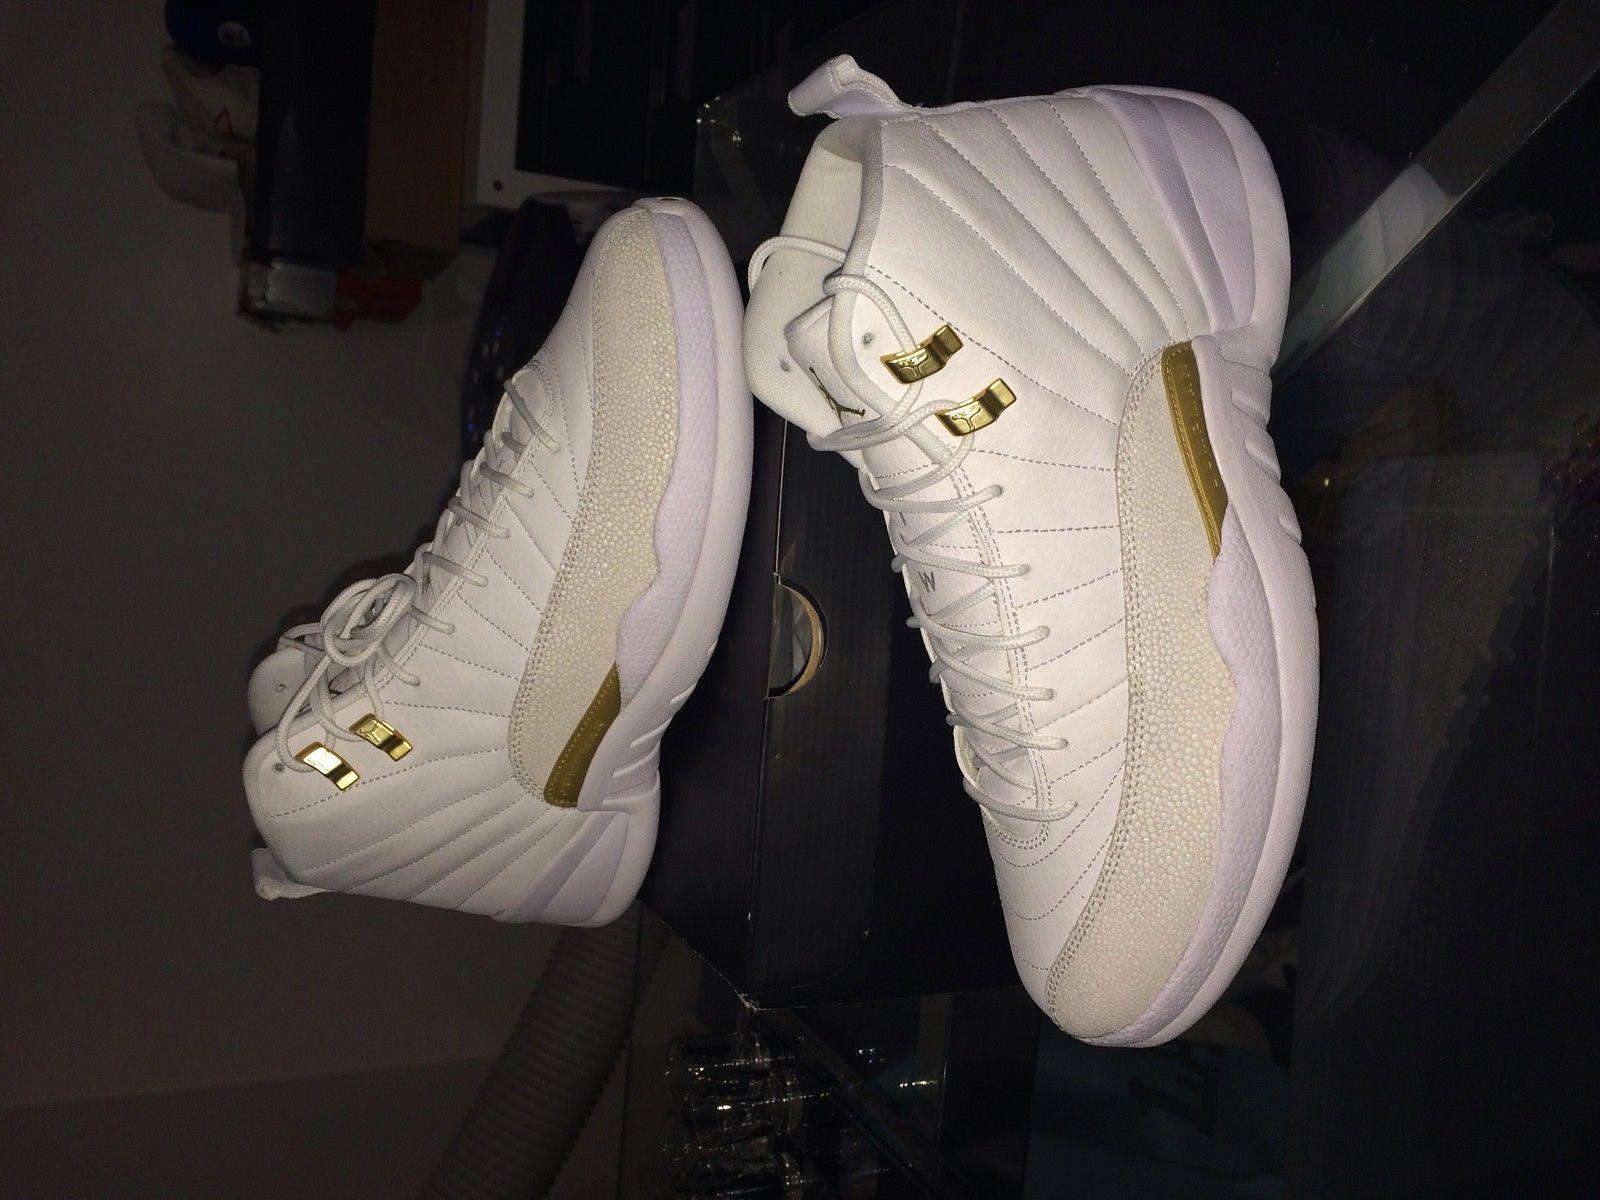 air-jordan-xii-12-ovo-white-seen-on-ebay-2